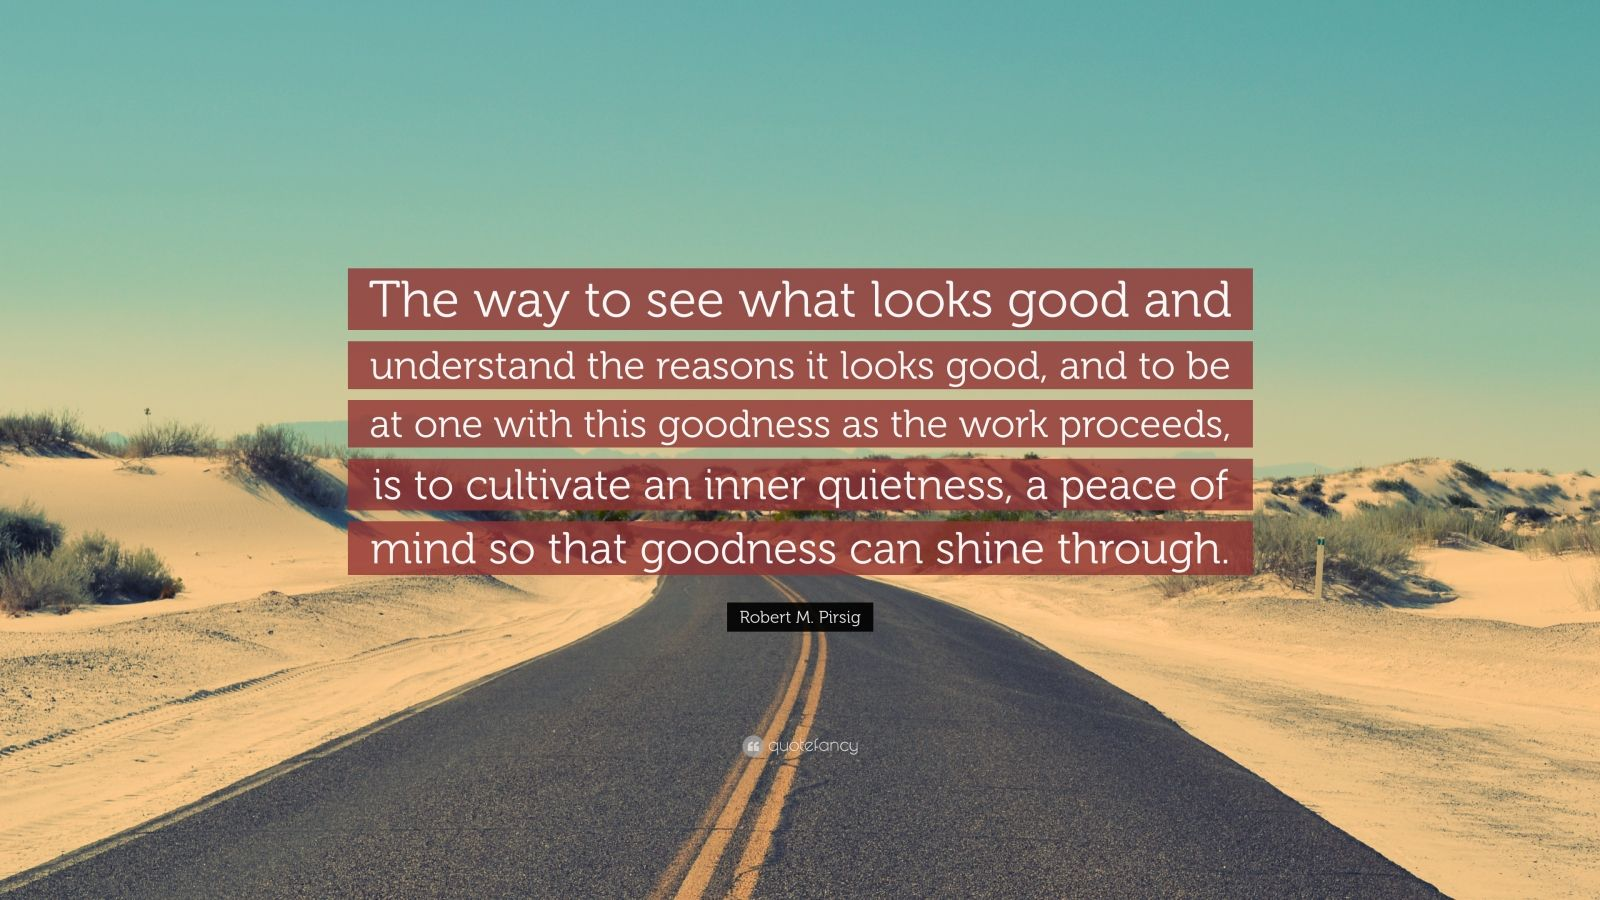 "Robert M. Pirsig Quote: ""The way to see what looks good and understand the reasons it looks good, and to be at one with this goodness as the work proceeds, is to cultivate an inner quietness, a peace of mind so that goodness can shine through."""